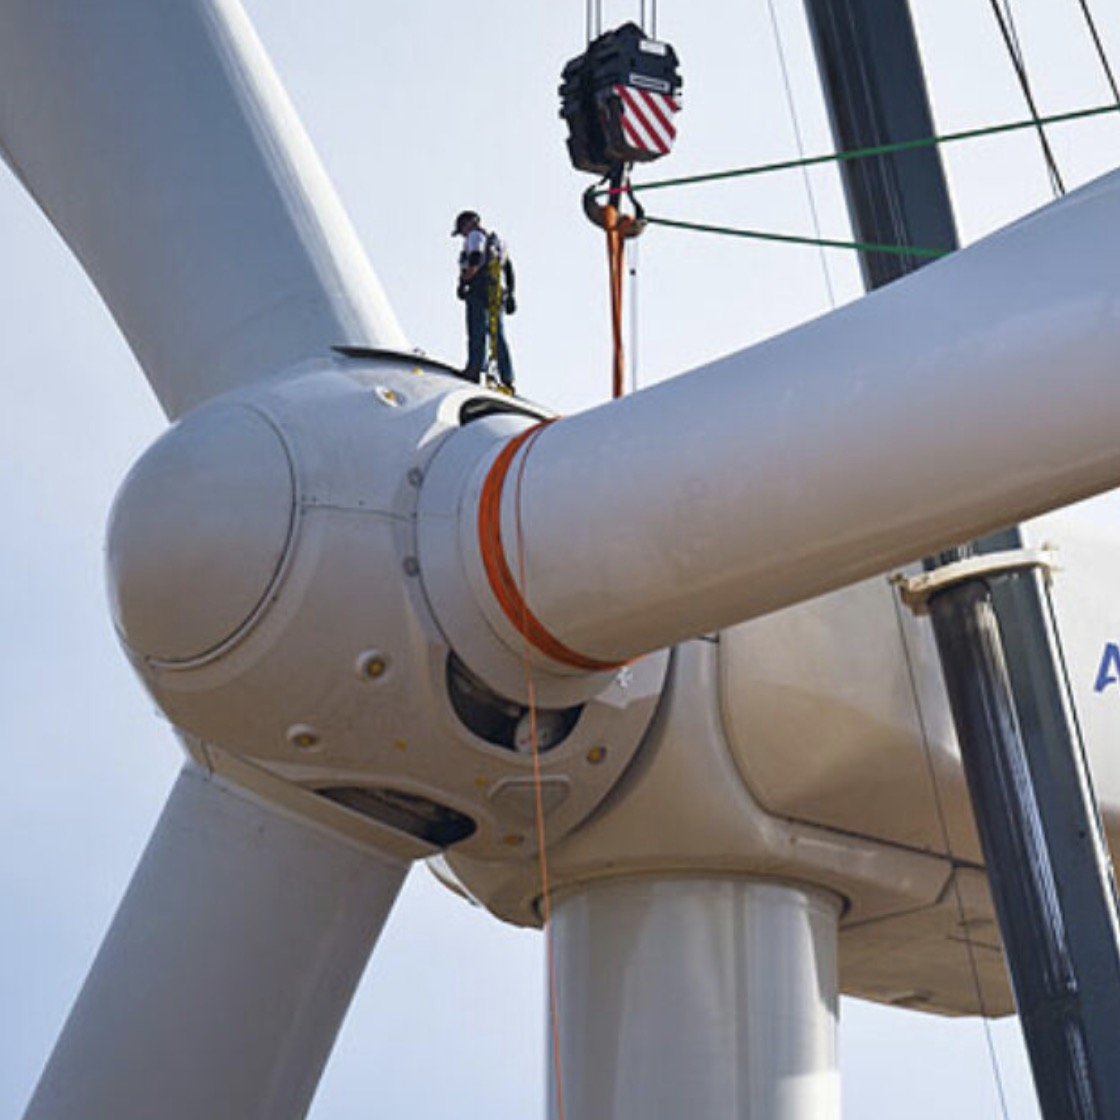 A worker stands on top of a wind turbine under construction.